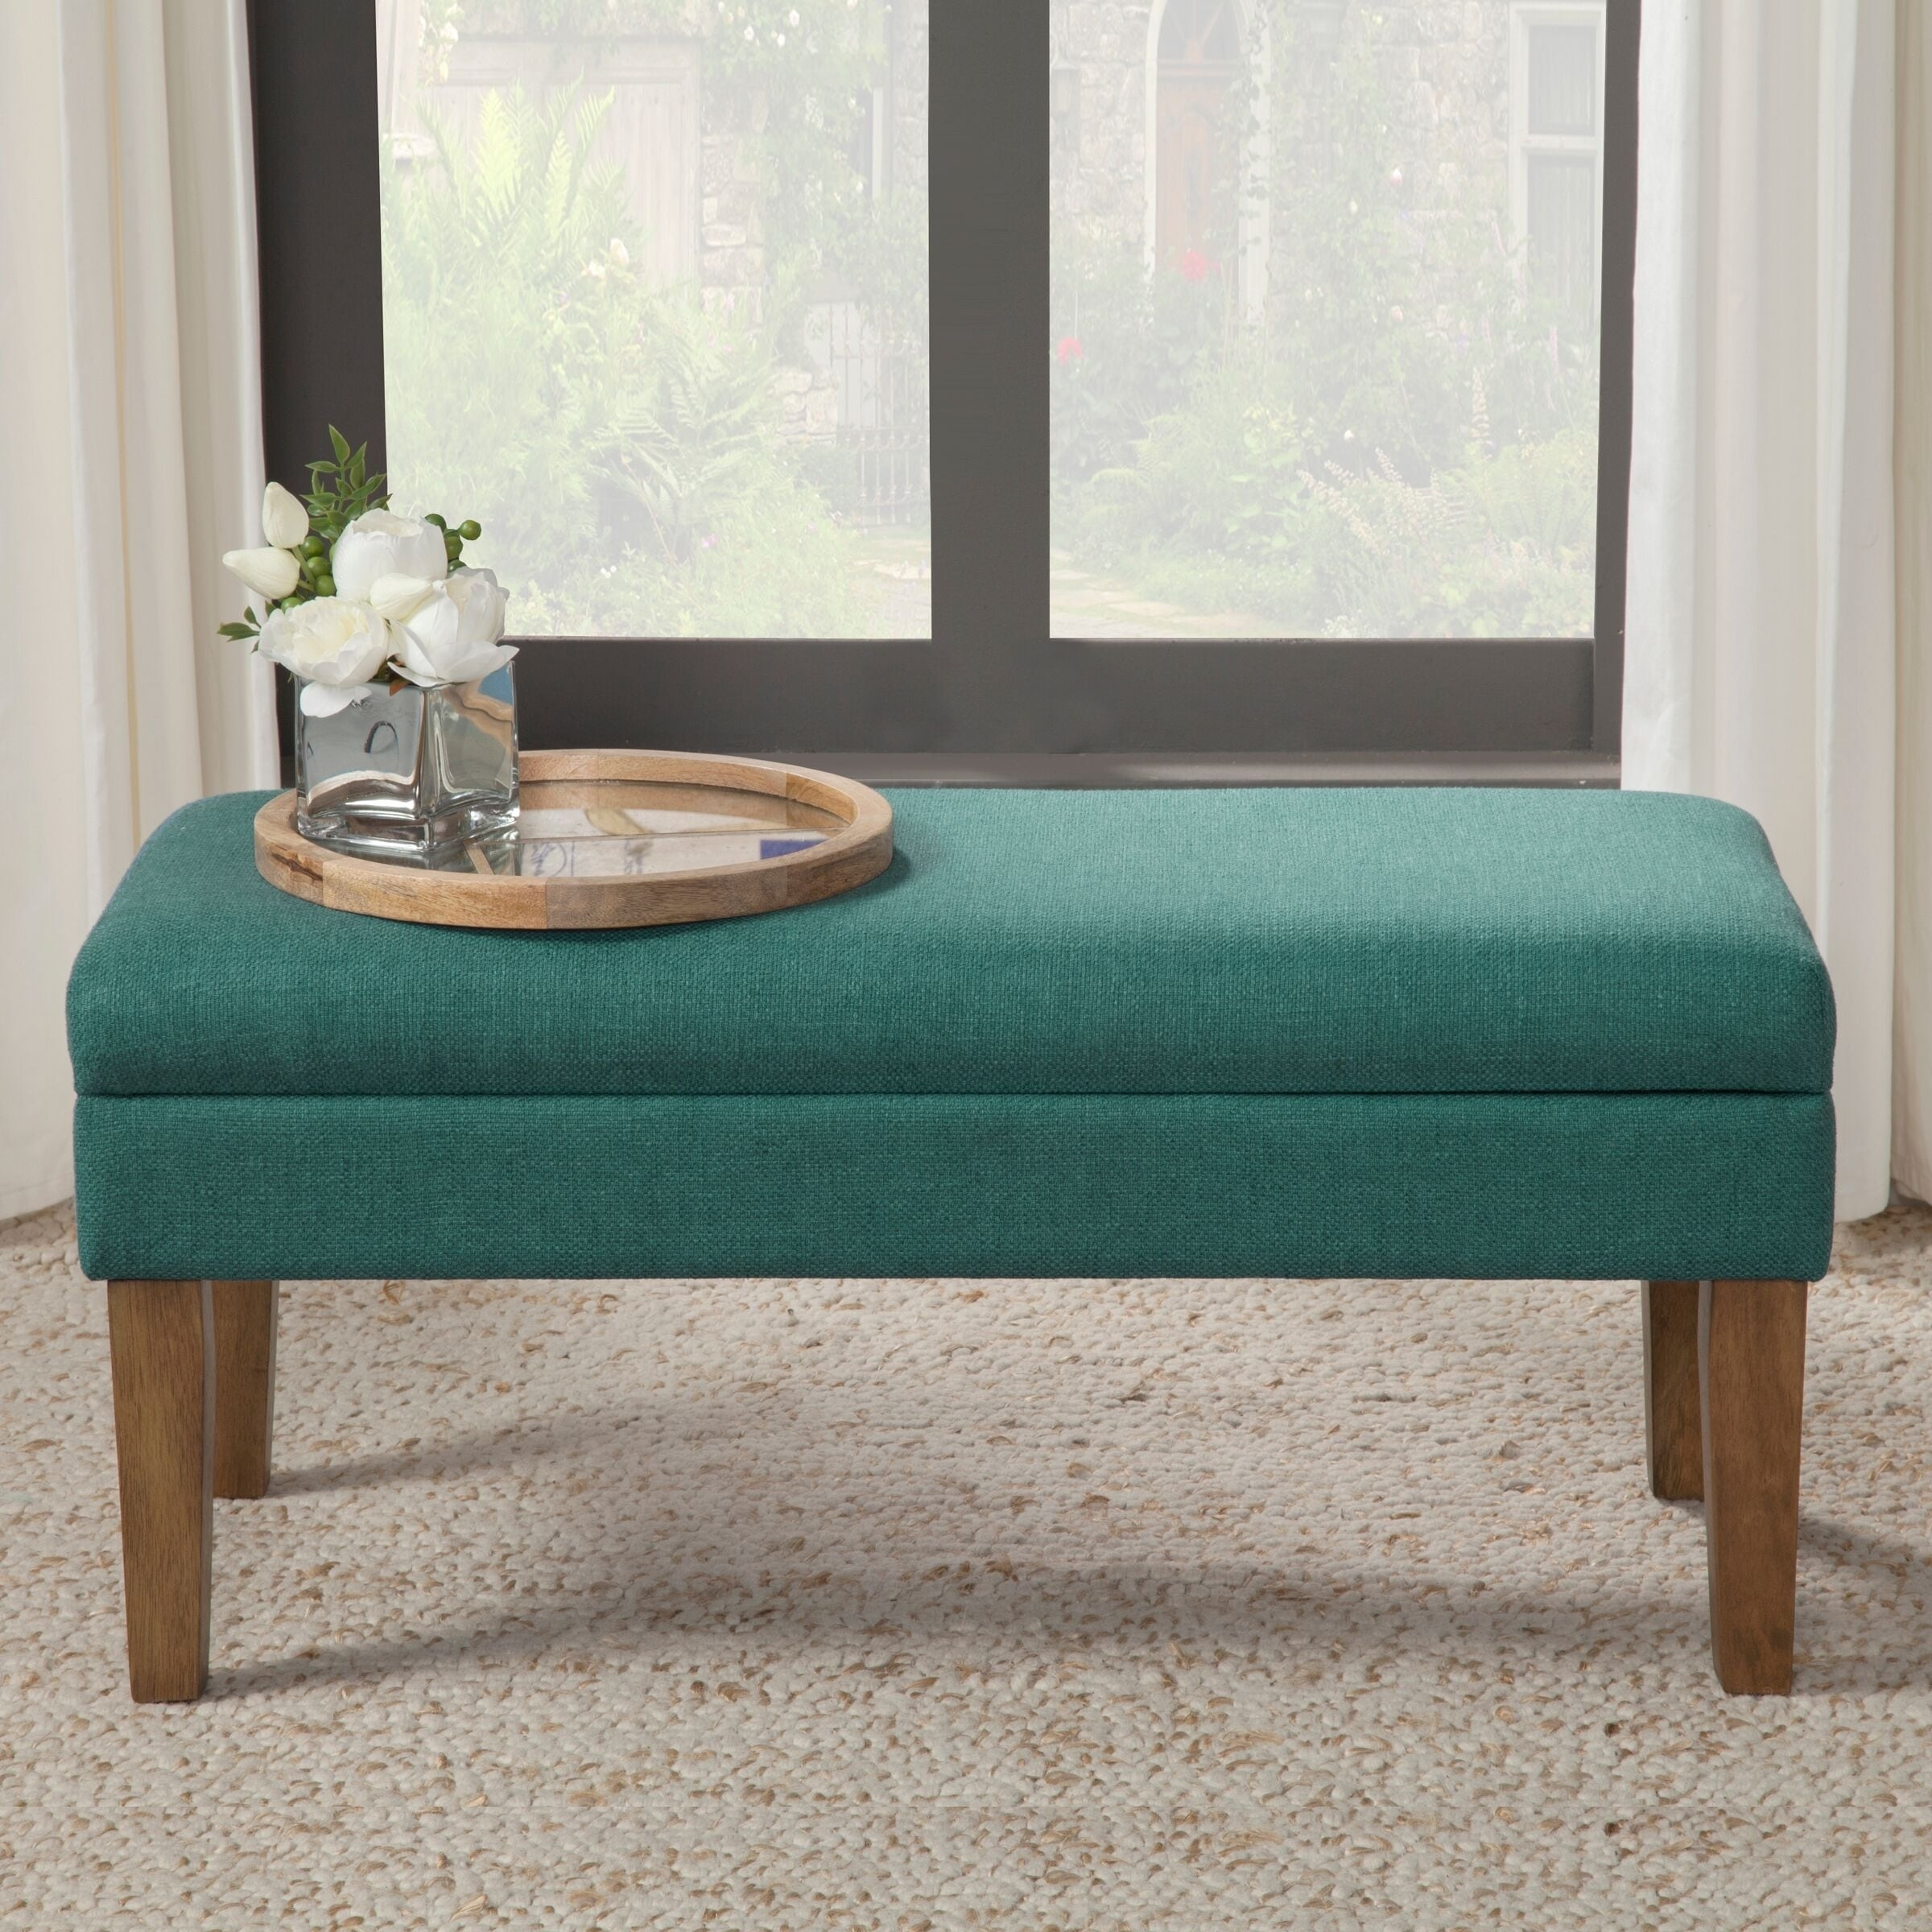 Ordinaire Shop HomePop Teal Chunky Textured Decorative Storage Bench   On Sale   Free  Shipping Today   Overstock   9728739